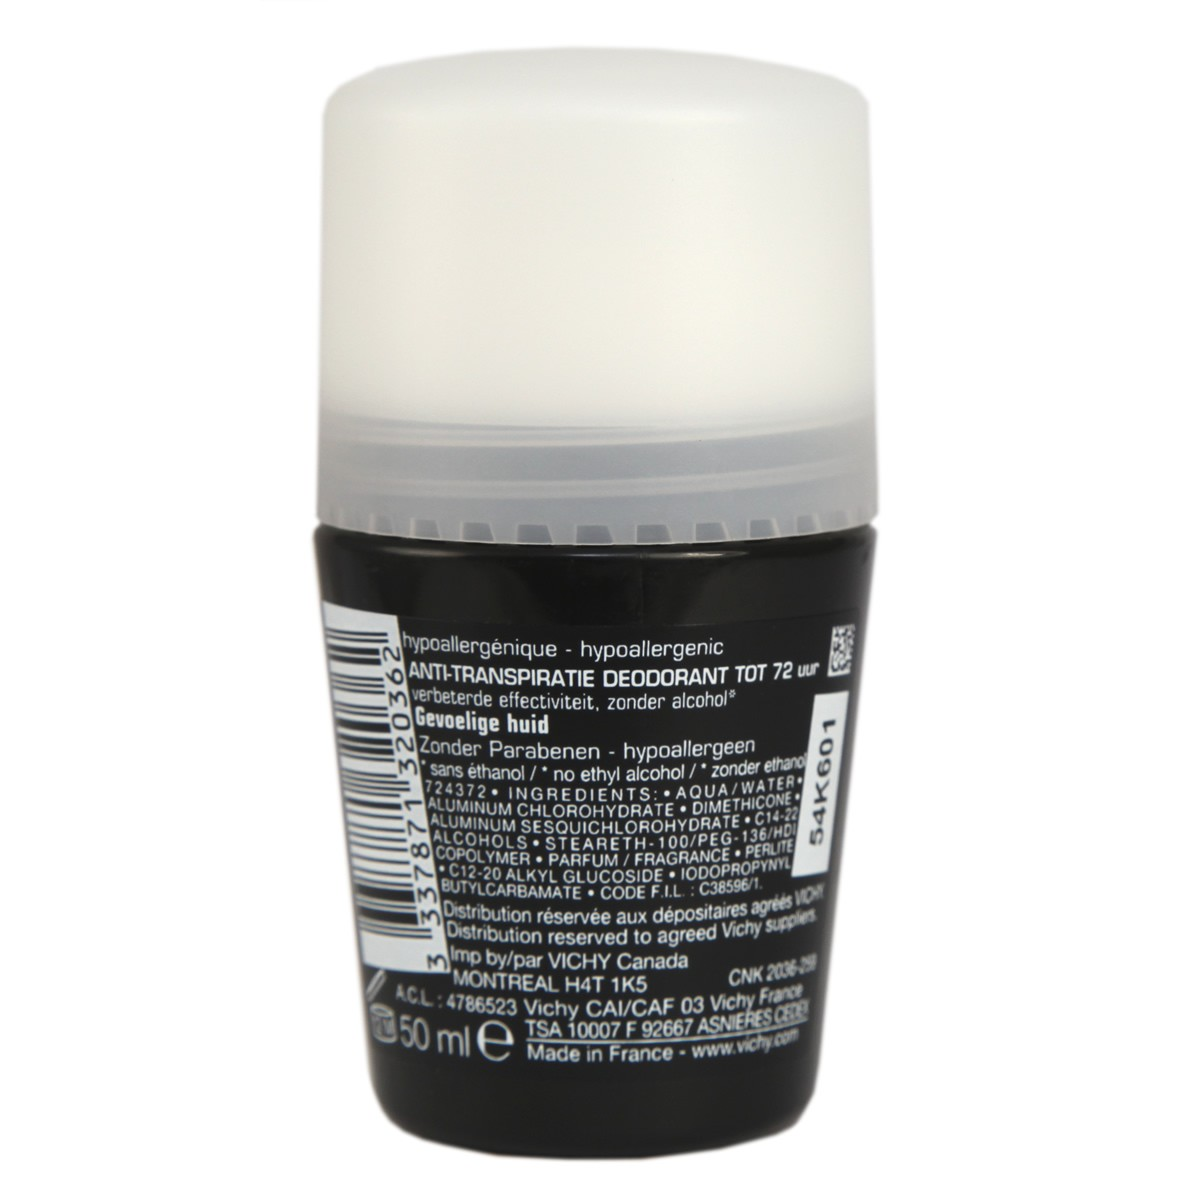 Vichy Homme Deodorant Roll-on 72Hr